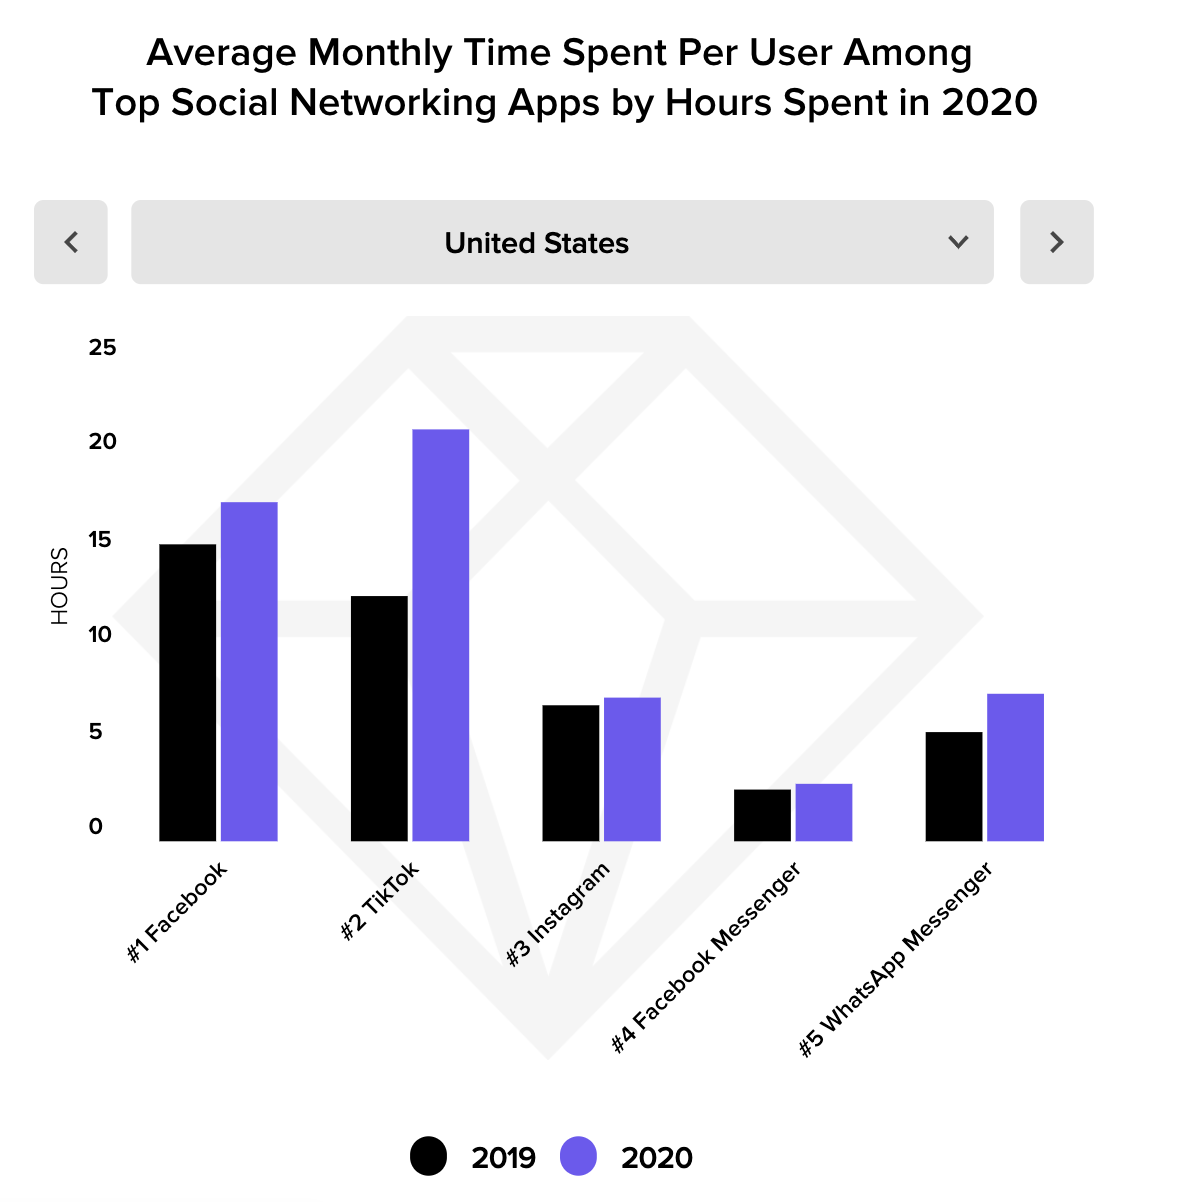 TikTok Surpasses Facebook as Most Time-Consuming Social Media App of 2020